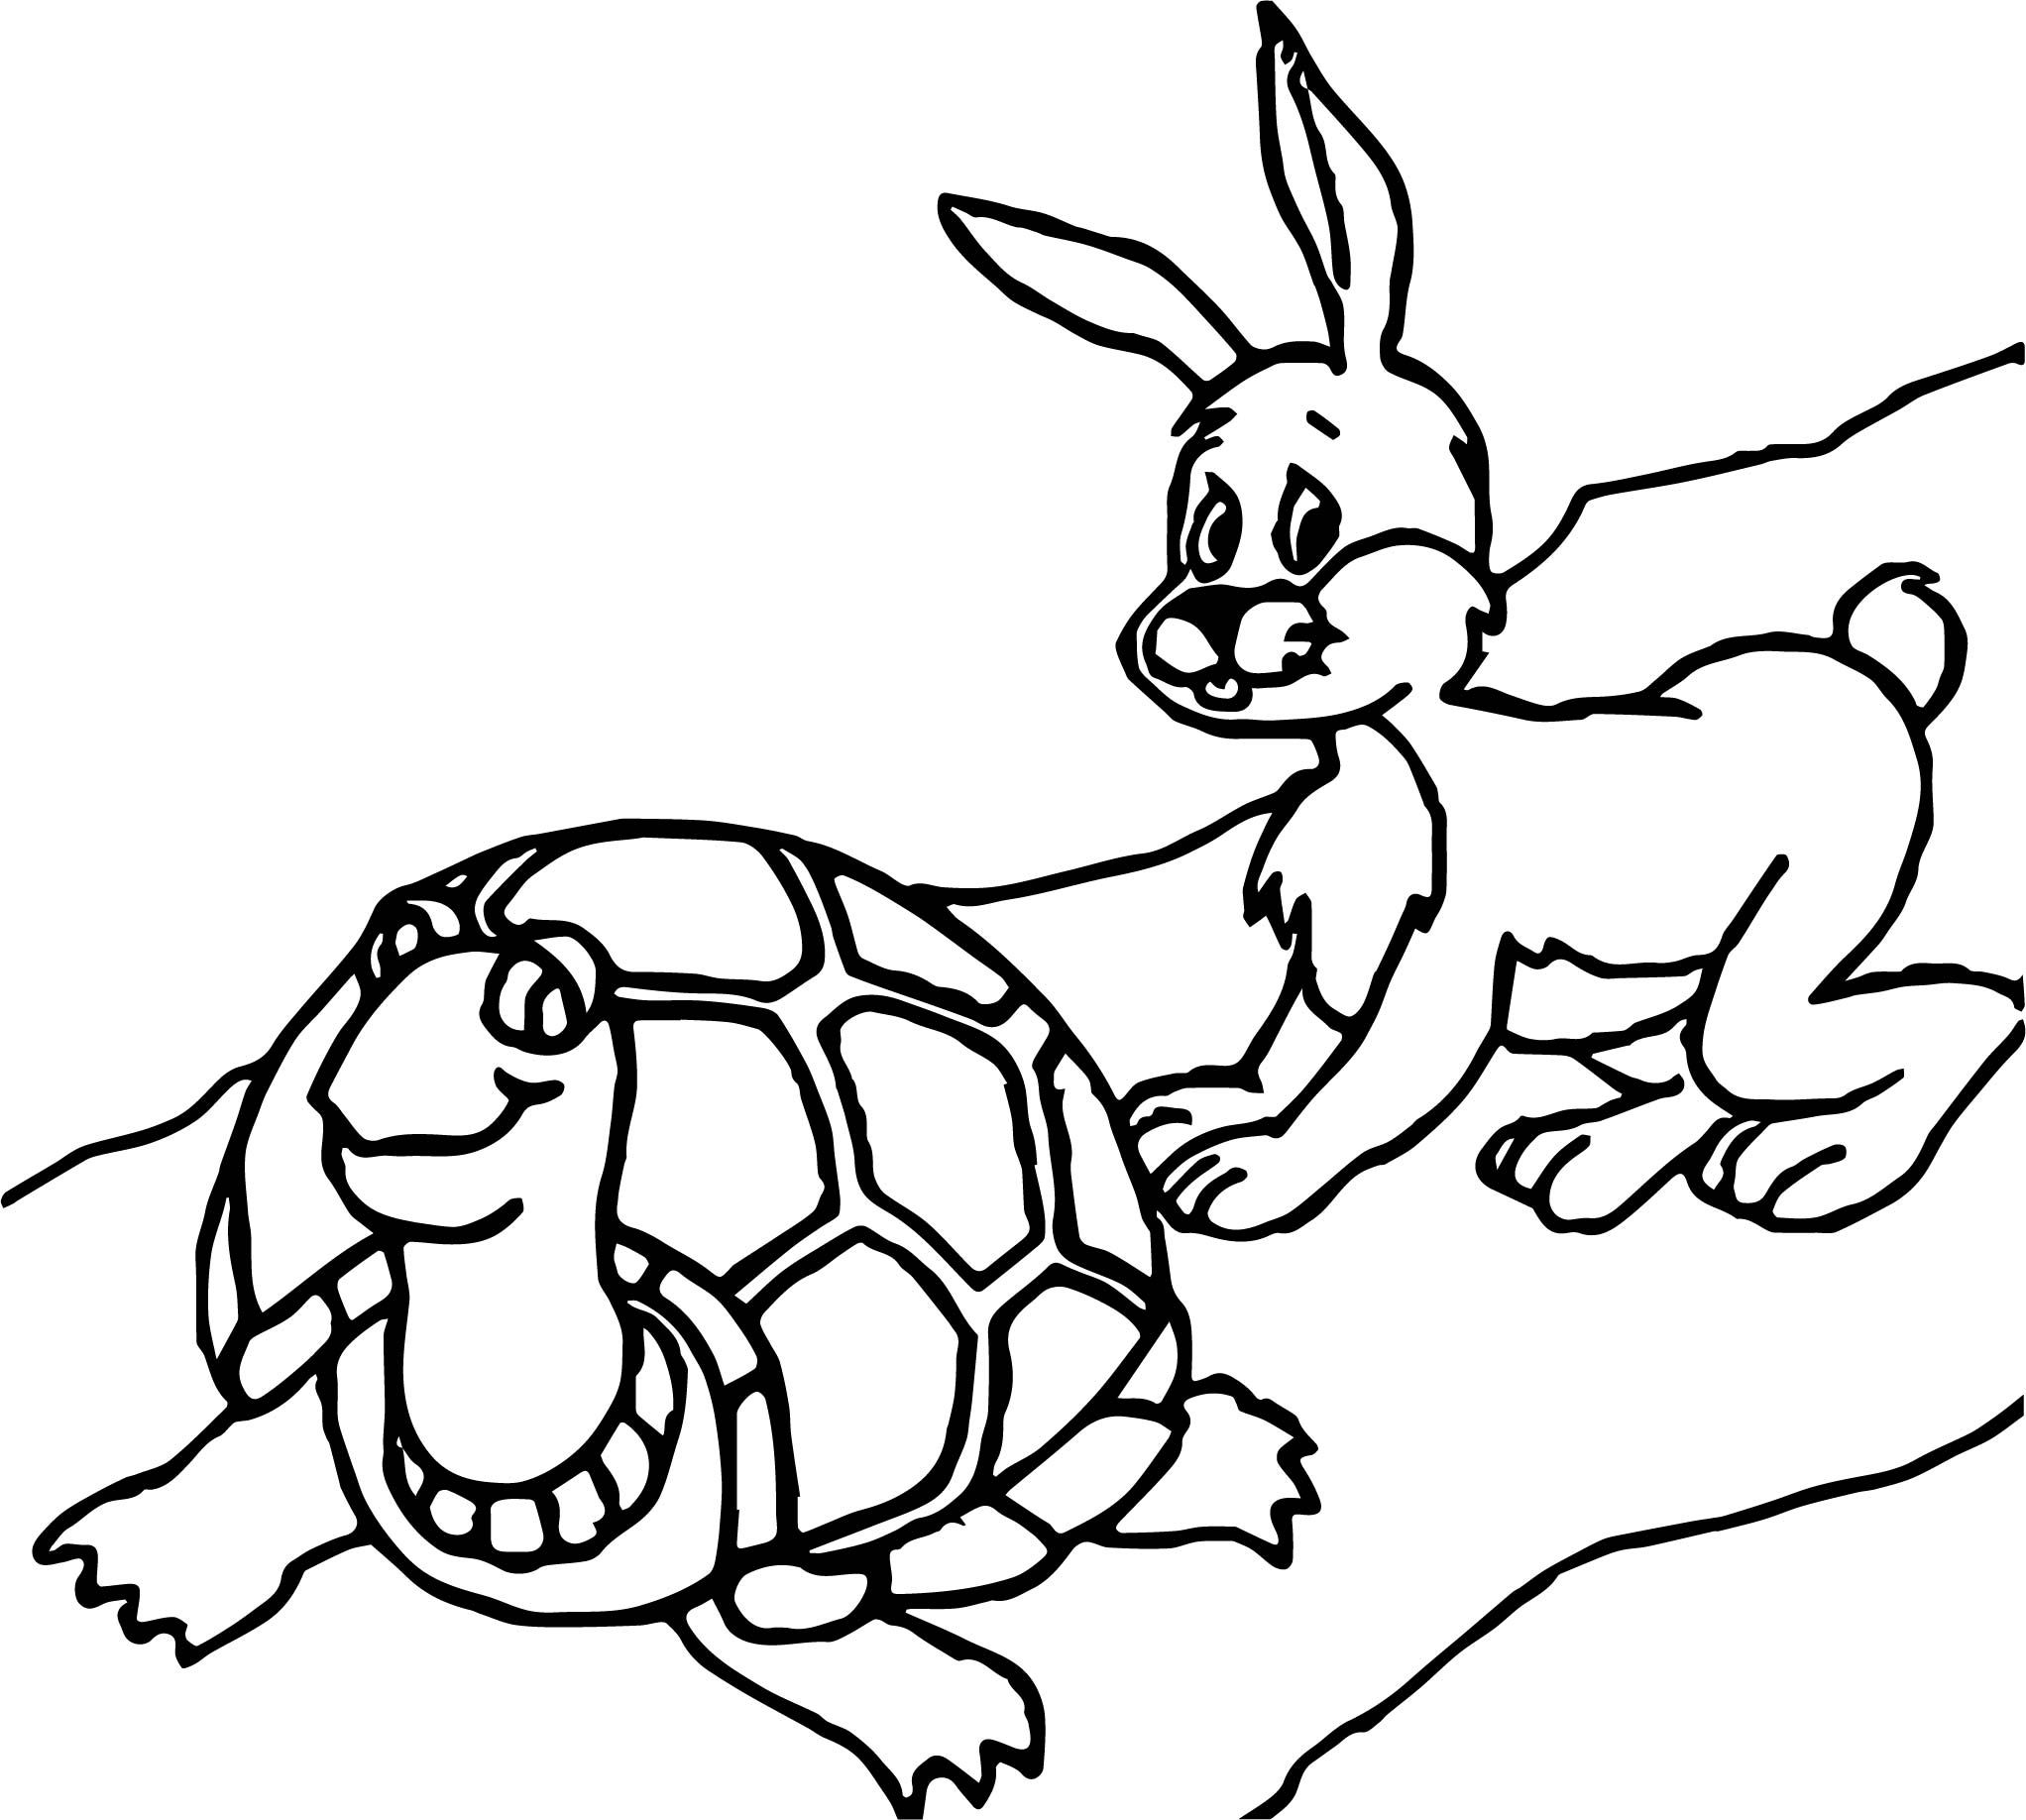 Awesome Tortoise Turtle Bunny Coloring Page Bunny Coloring Pages Turtle Coloring Pages Owl Coloring Pages